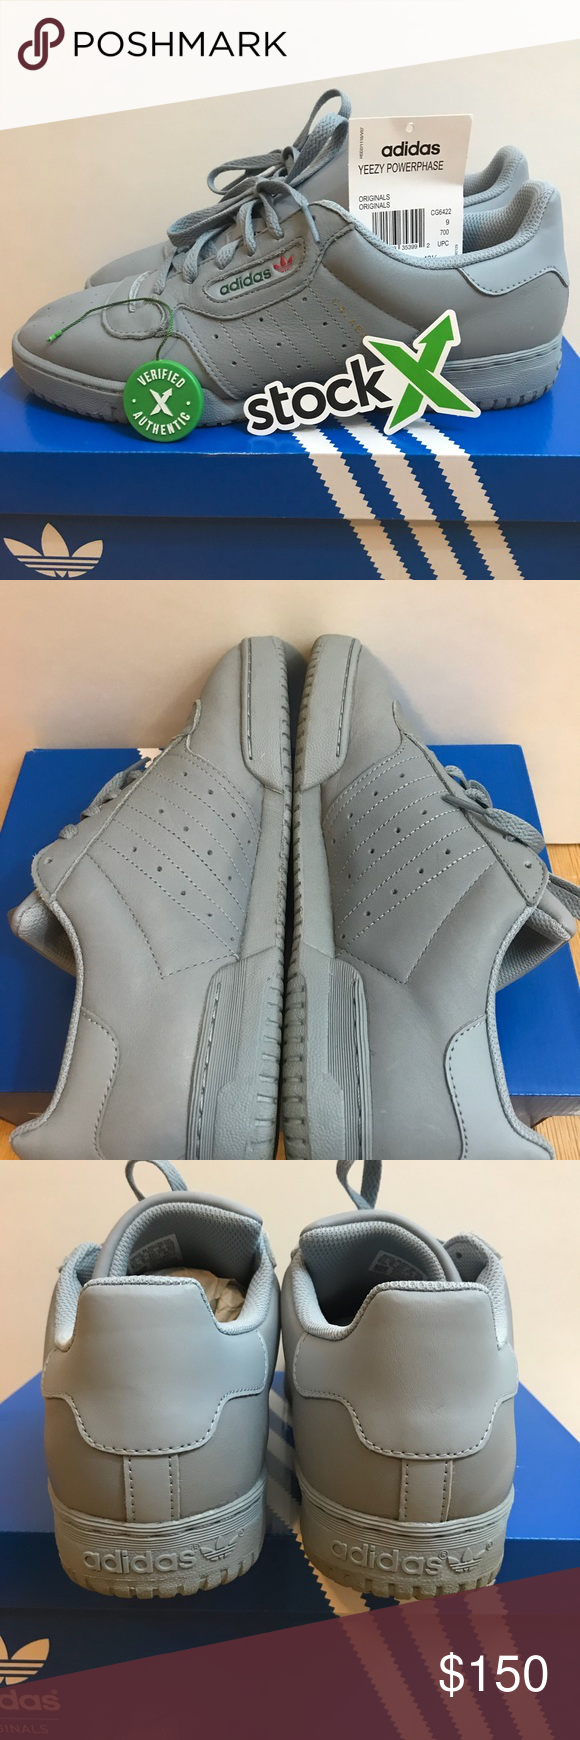 9268de79 Adidas Yeezy Powerphase Calabasas Grey sz 9.5 StockX verified Yeezy  Powerphase sz 9.5 Grey. Worn 2 times. Comes with Og box adidas Shoes  Athletic Shoes